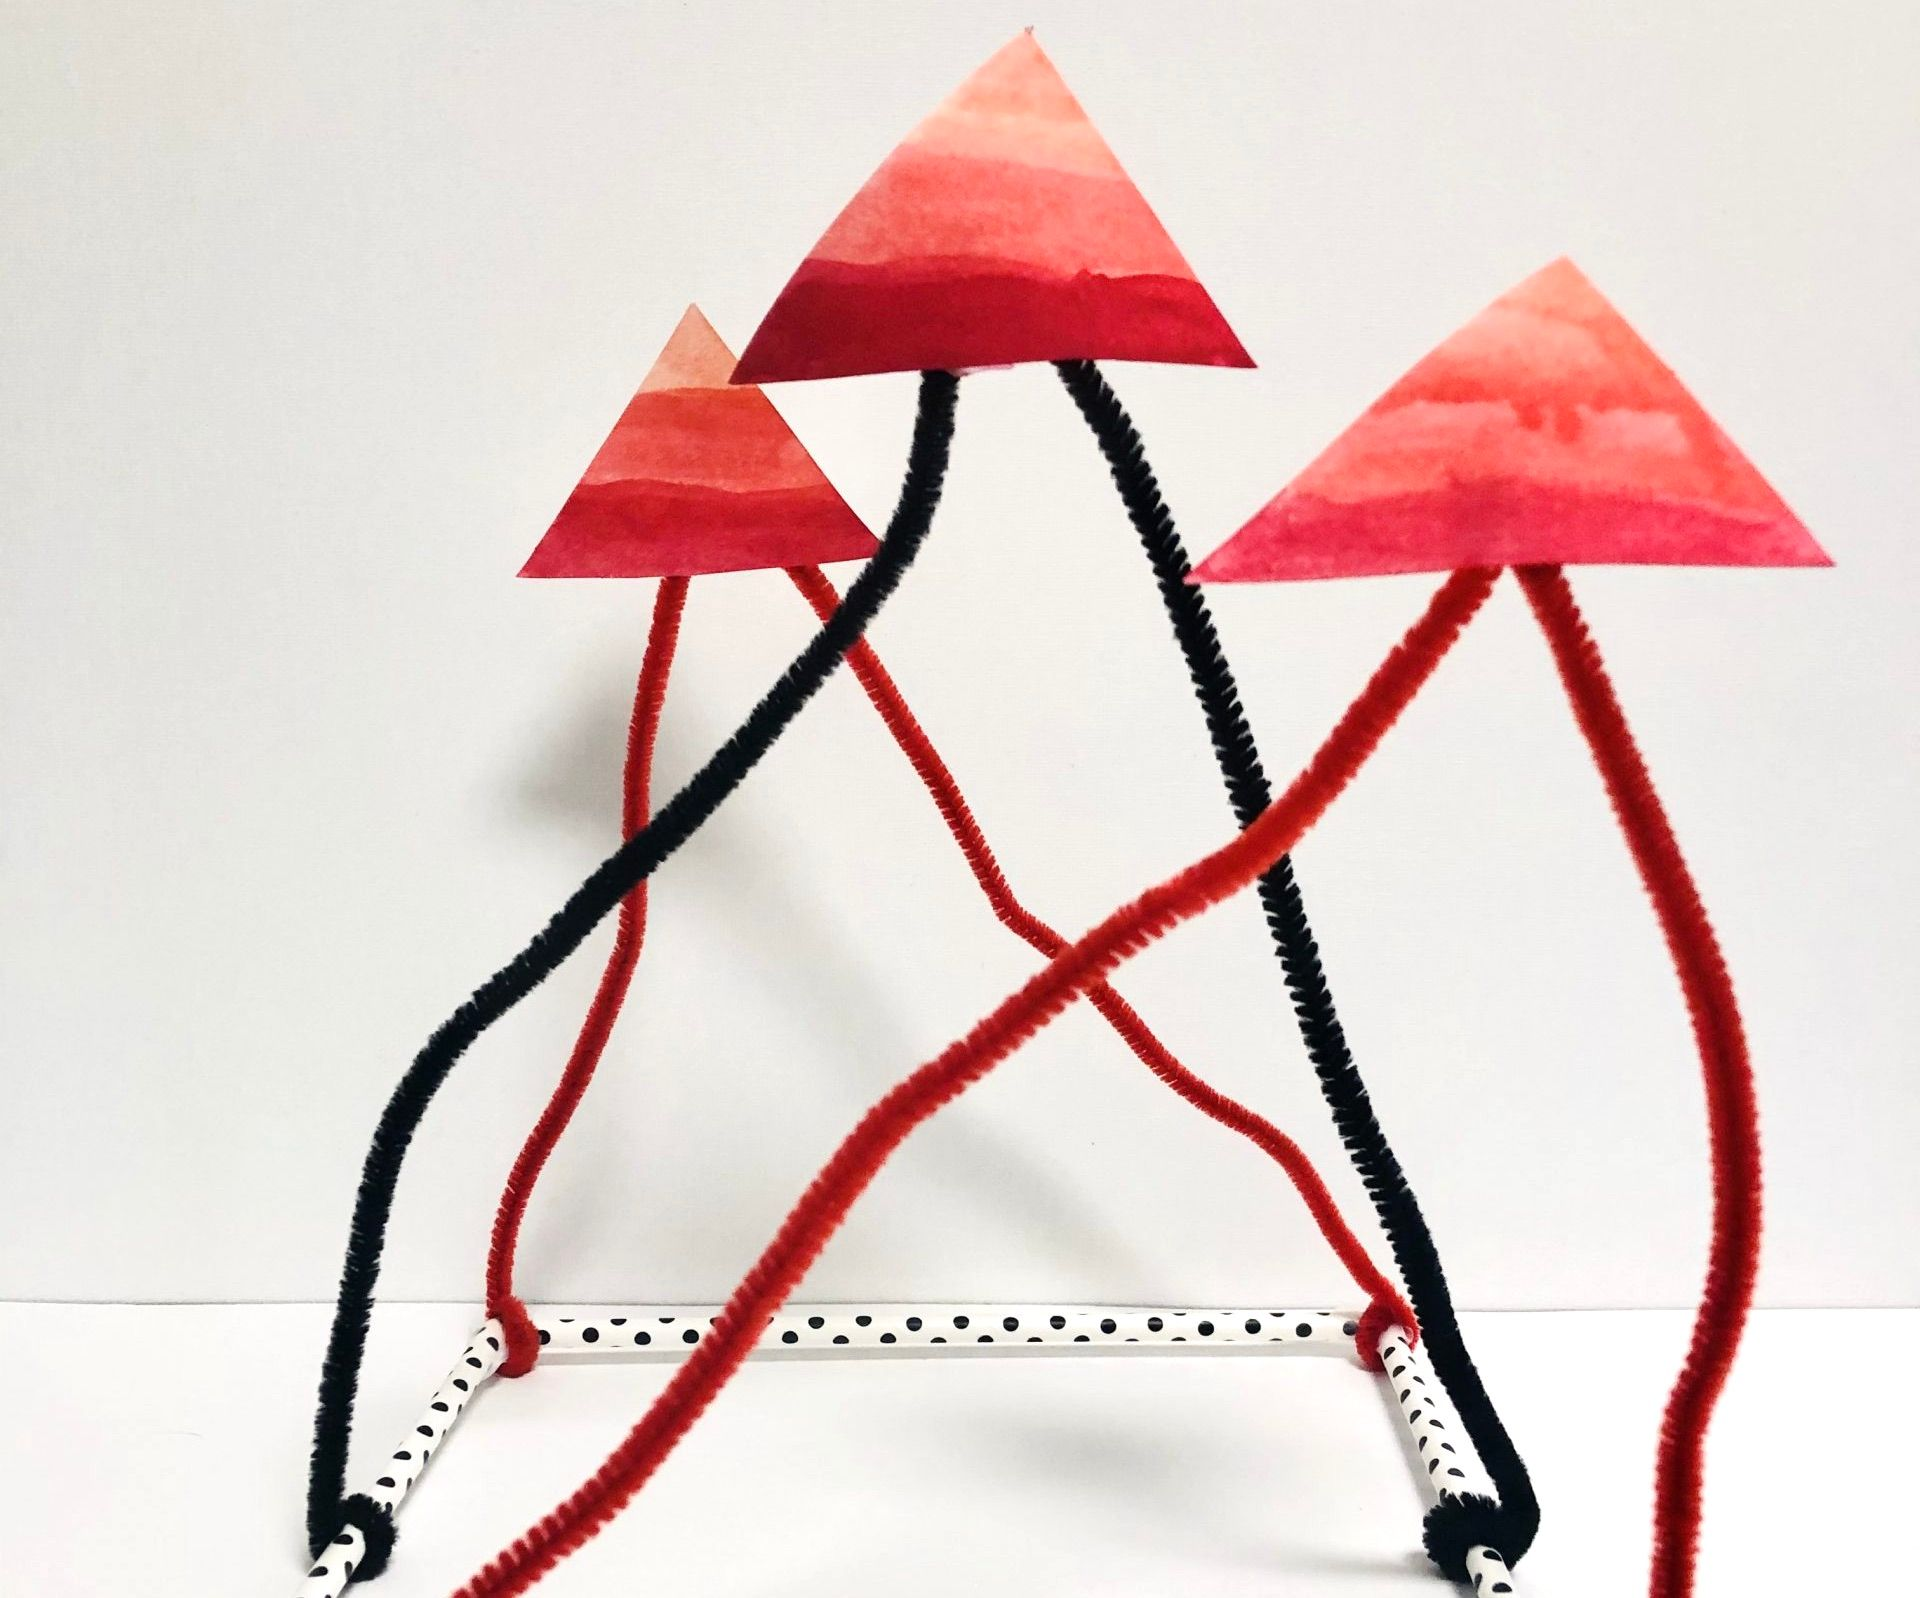 Red, black, and white structure. The square base is made from white polka-dot tubes. Pipe cleaners extend upward displaying three red triangles.